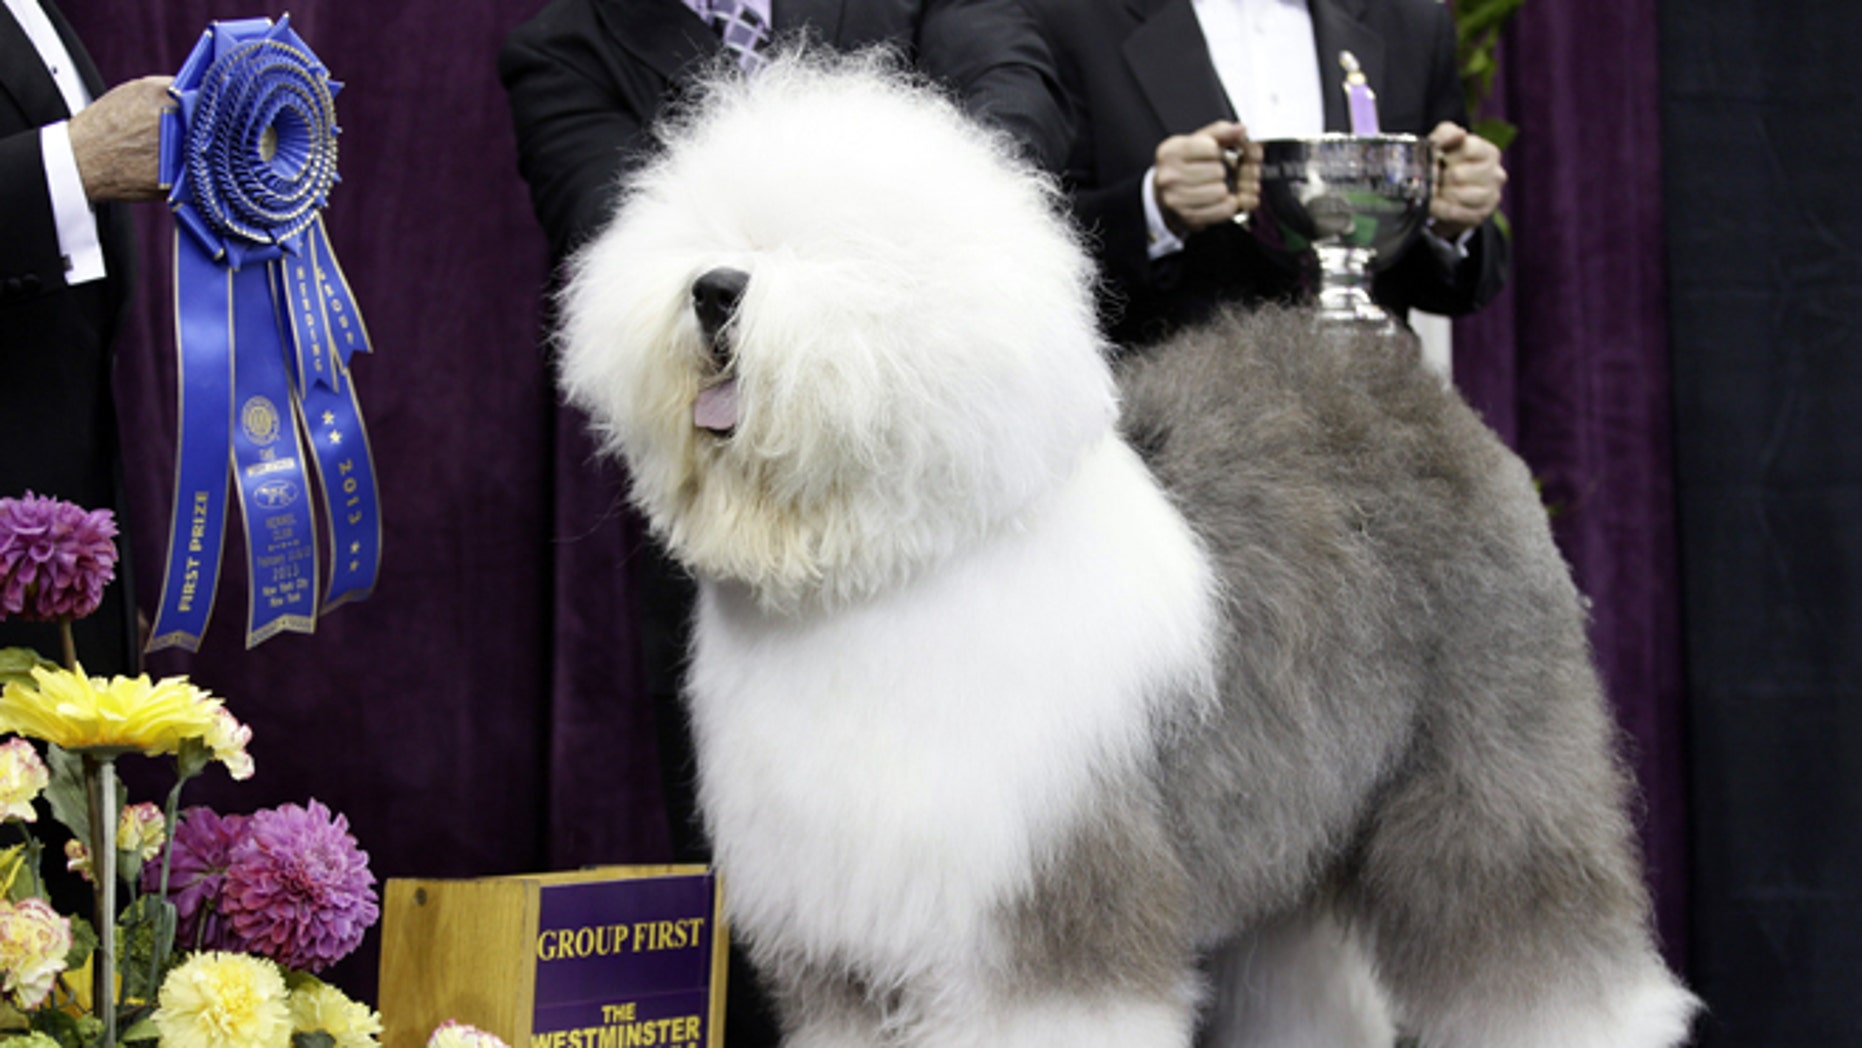 Feb. 11, 2013: Swagger, an Old English Sheep Dog, is posed for photographs after winning the herding group during the Westminster Kennel Club dog show at Madison Square Garden in New York. Swagger is a contender for the best in show during the 138th Westminster Kennel Club dog show. (AP/Frank Franklin II, File)